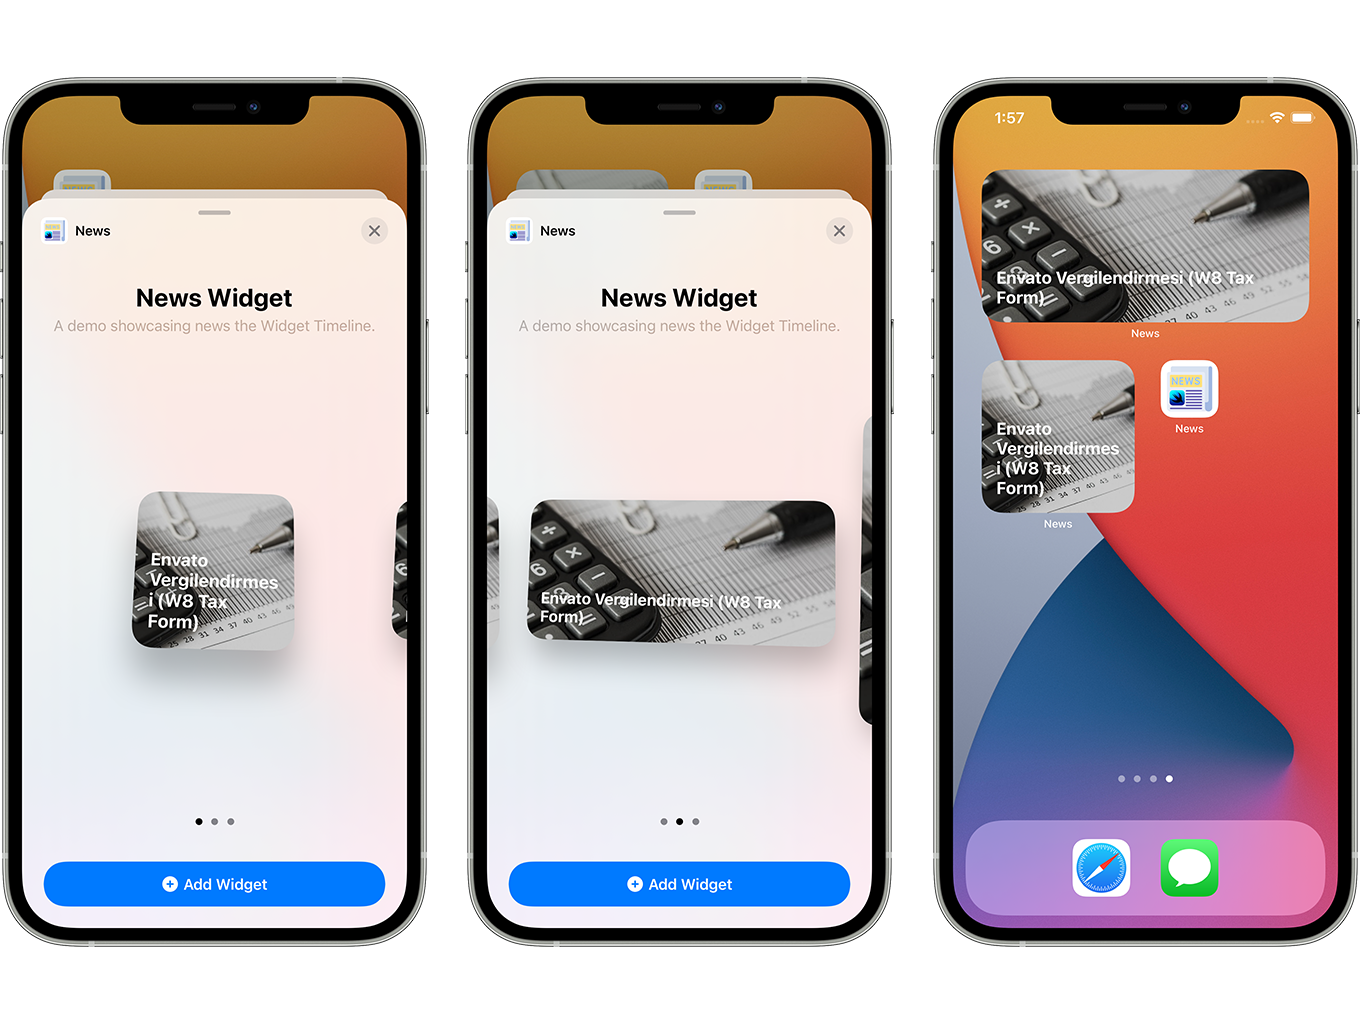 Blog and News SwiftUI iOS App for WordPress Site with AdMob, Firebase Push Notification and Widget - 8